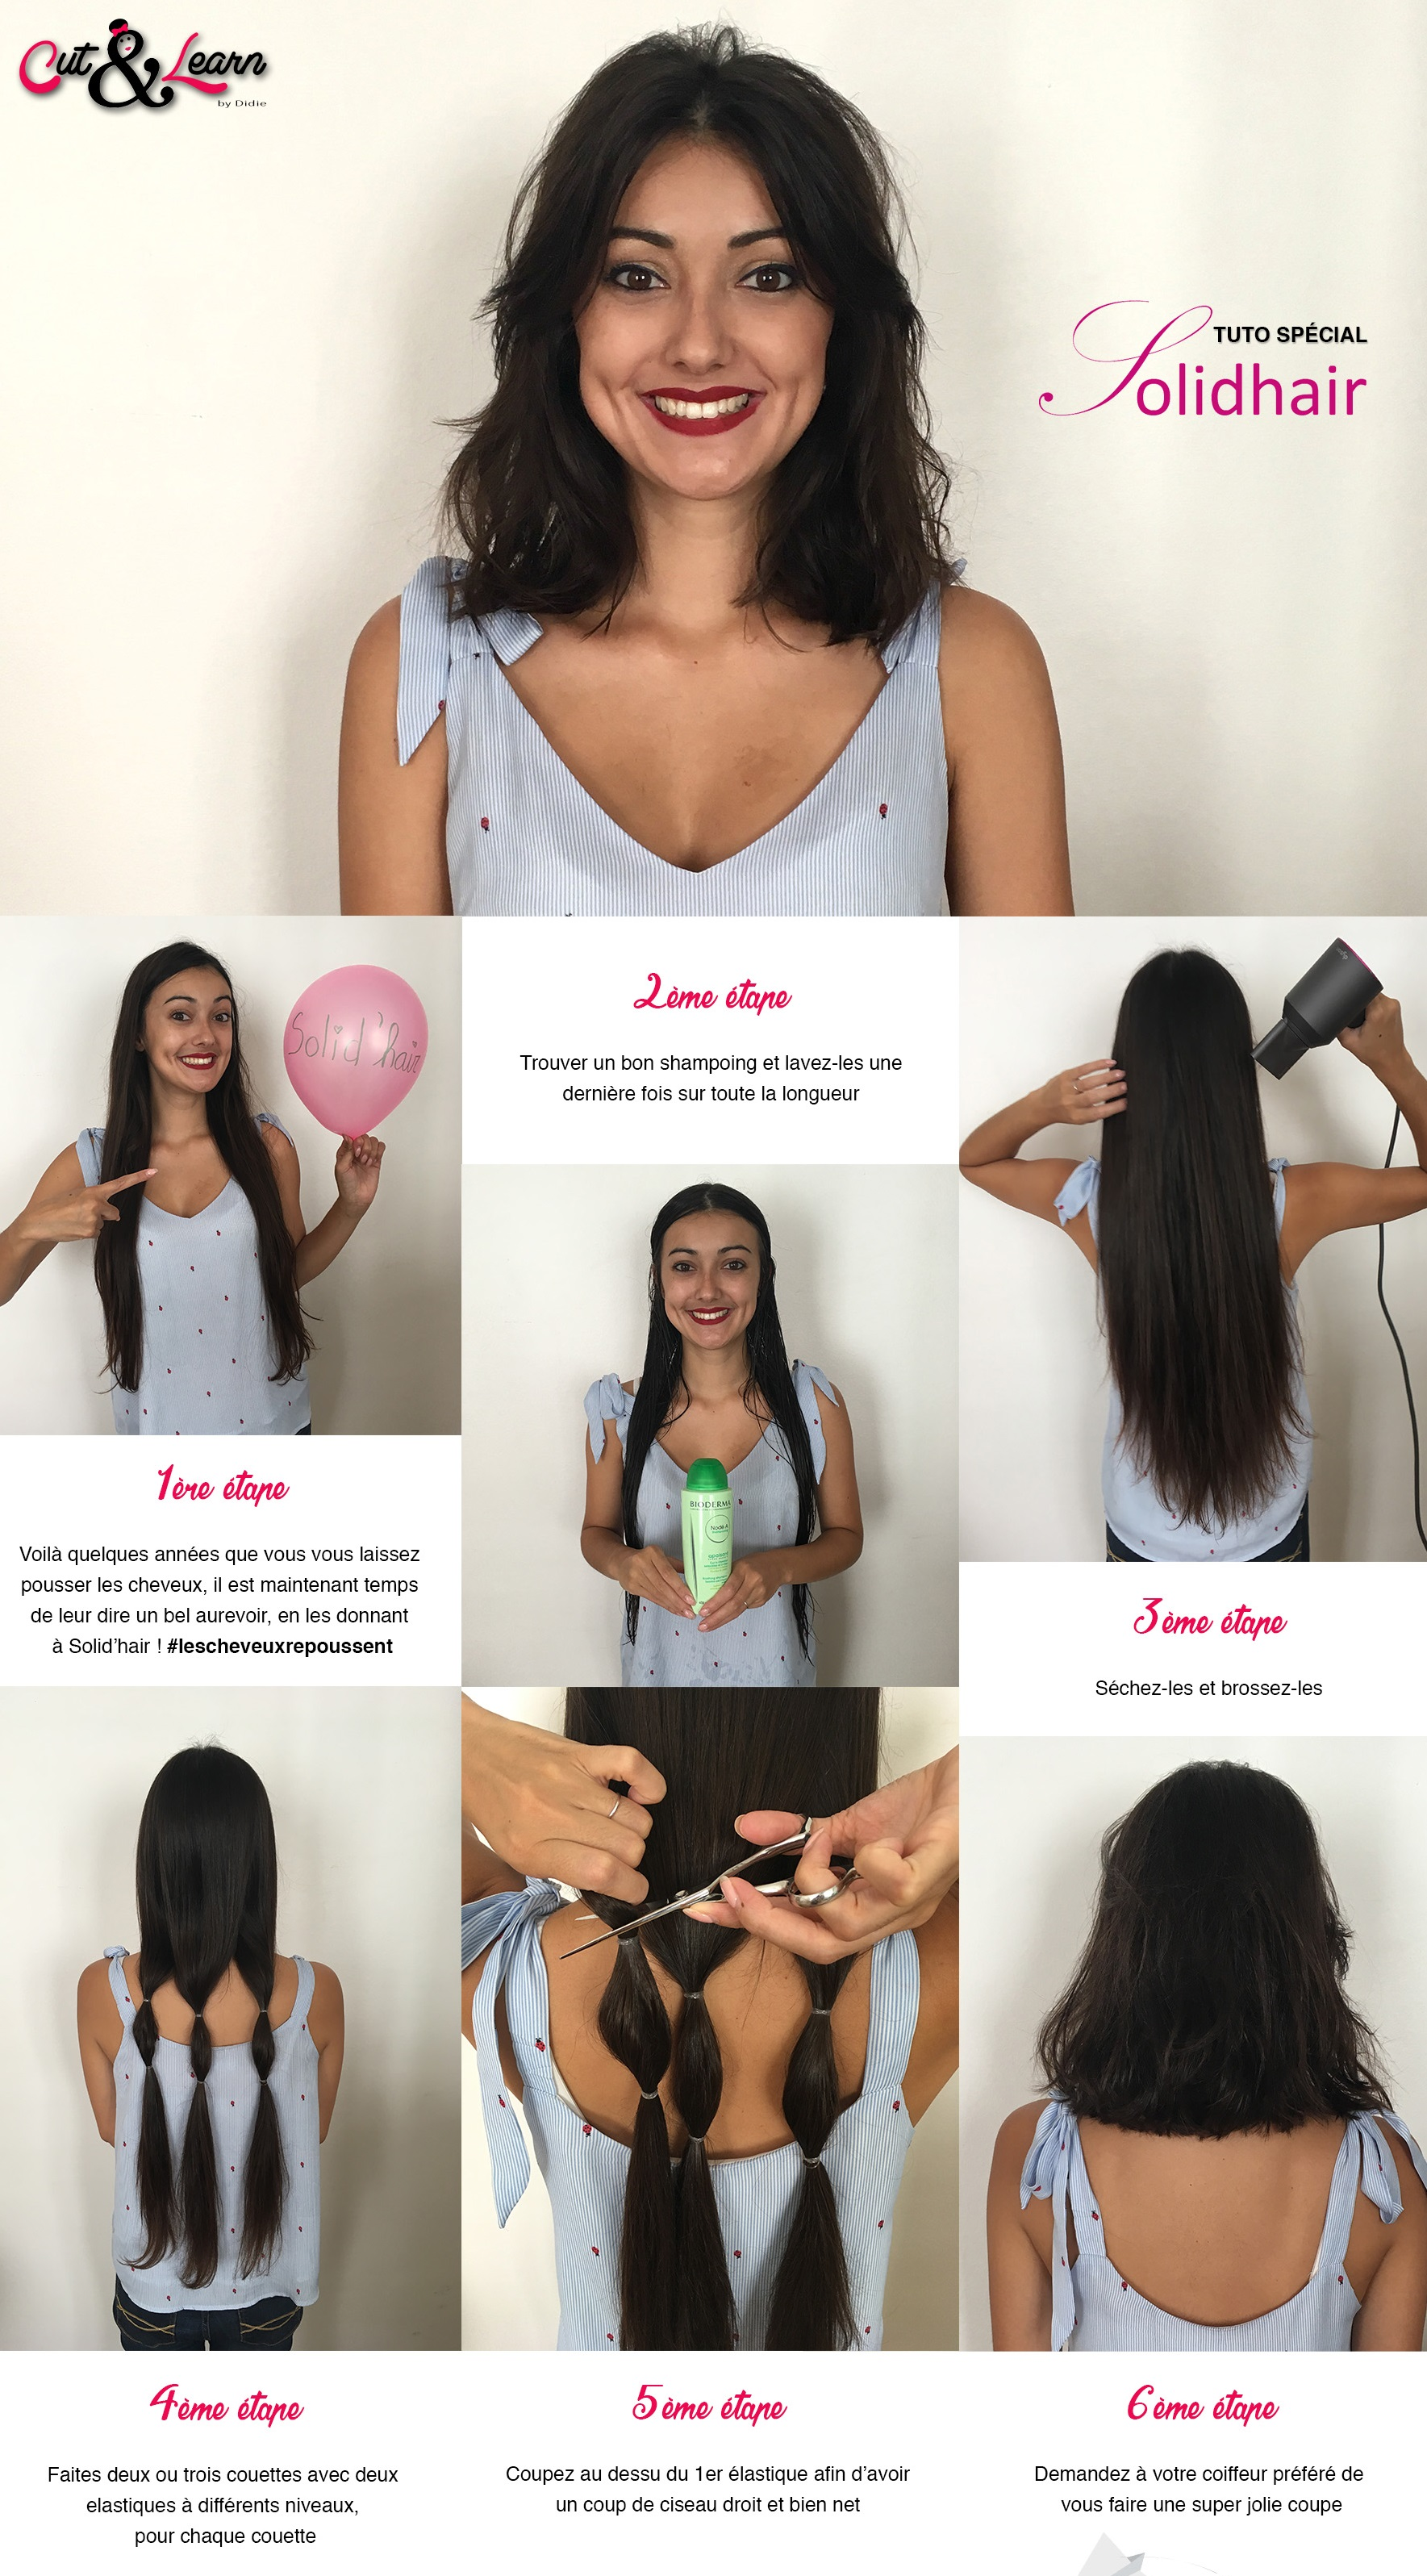 faire un don de cheveux – Association Solidhair